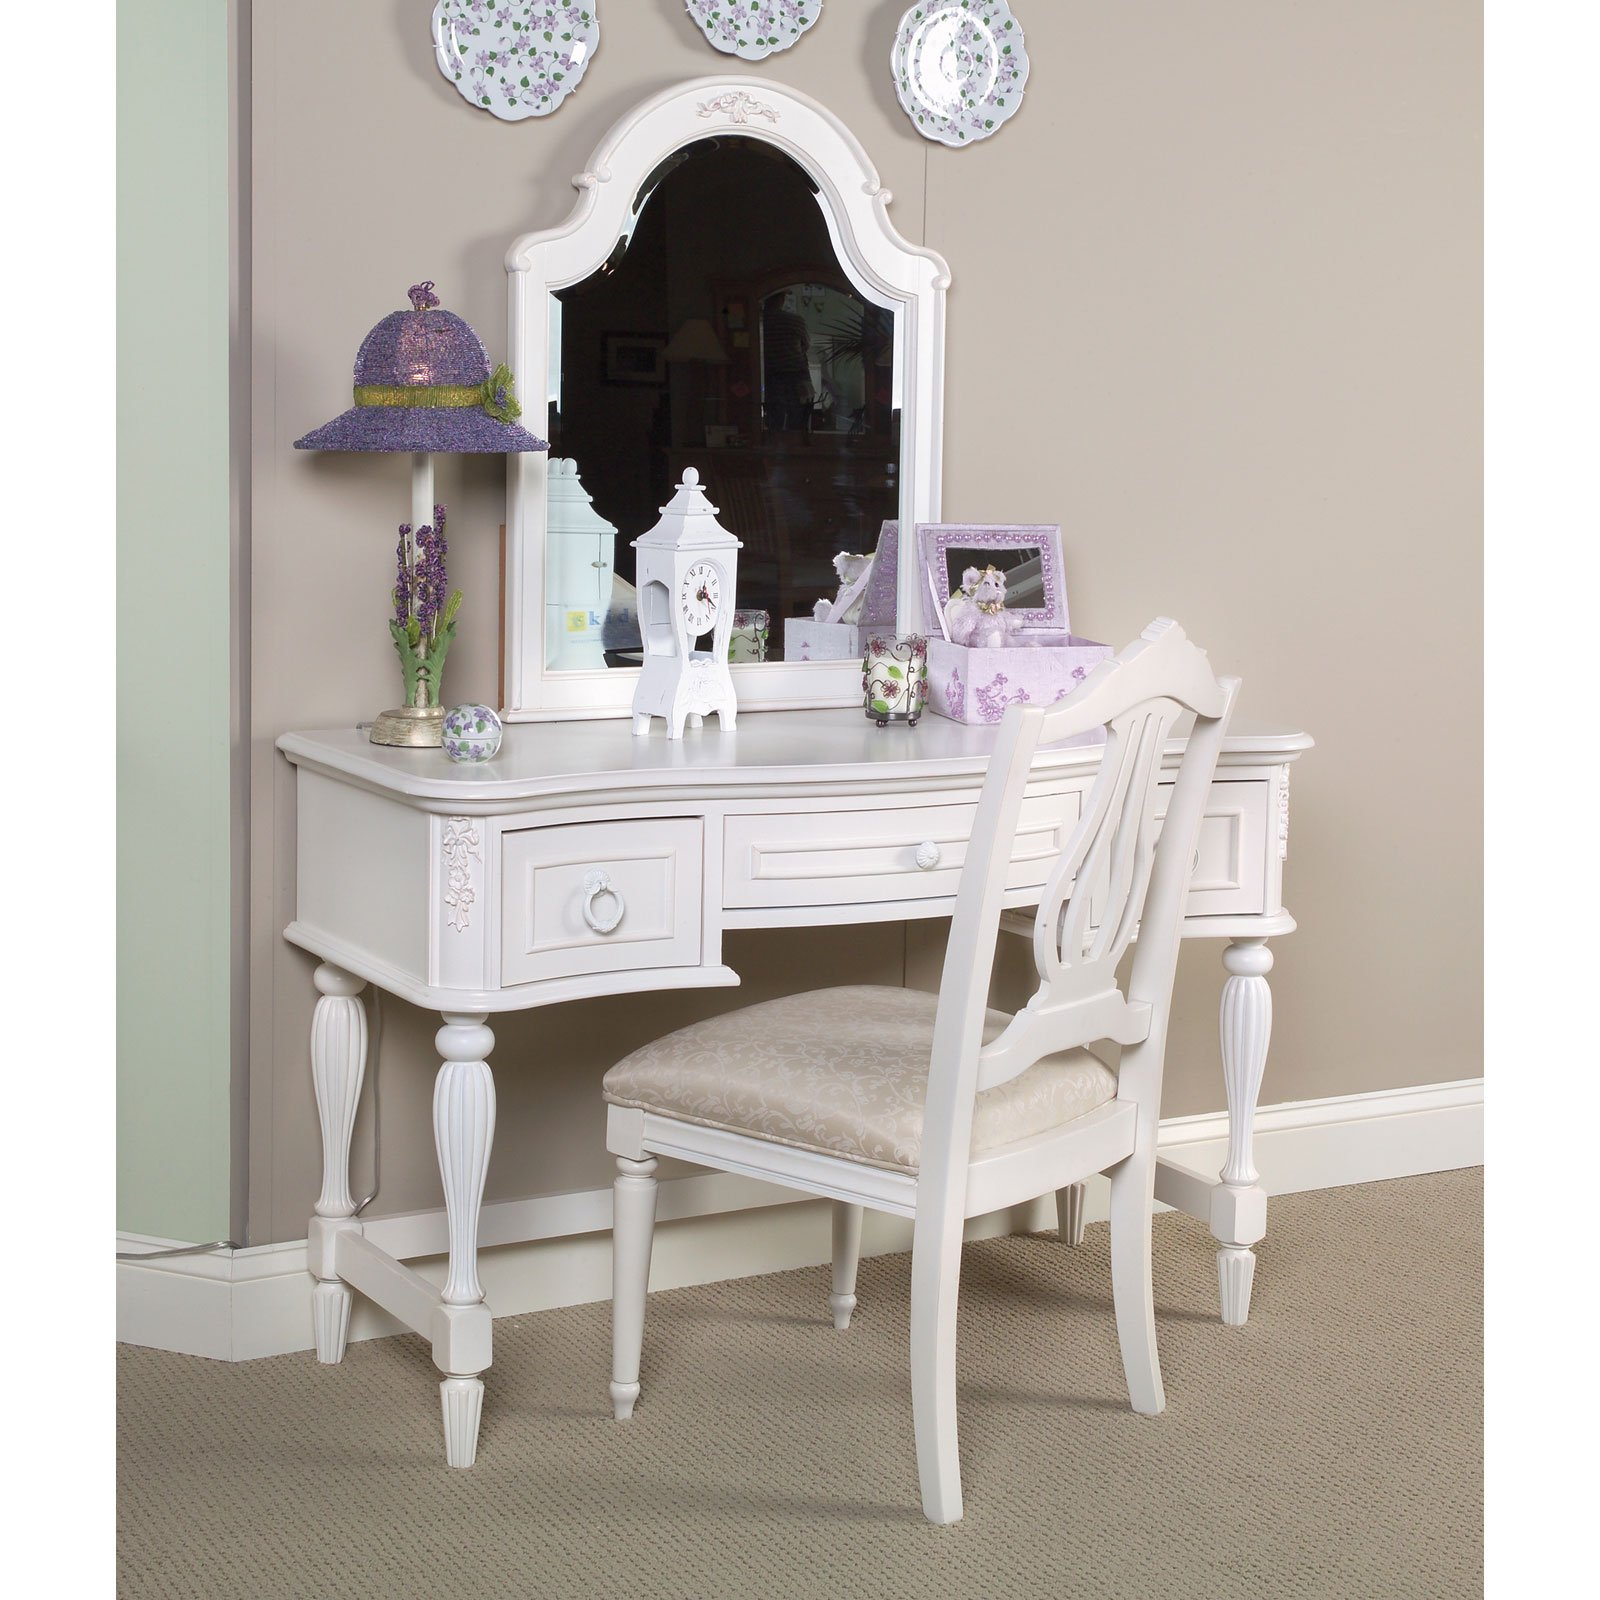 Bedroom Vanity Makeup Table Luxury Bedroom Vanity Future Dream House Design